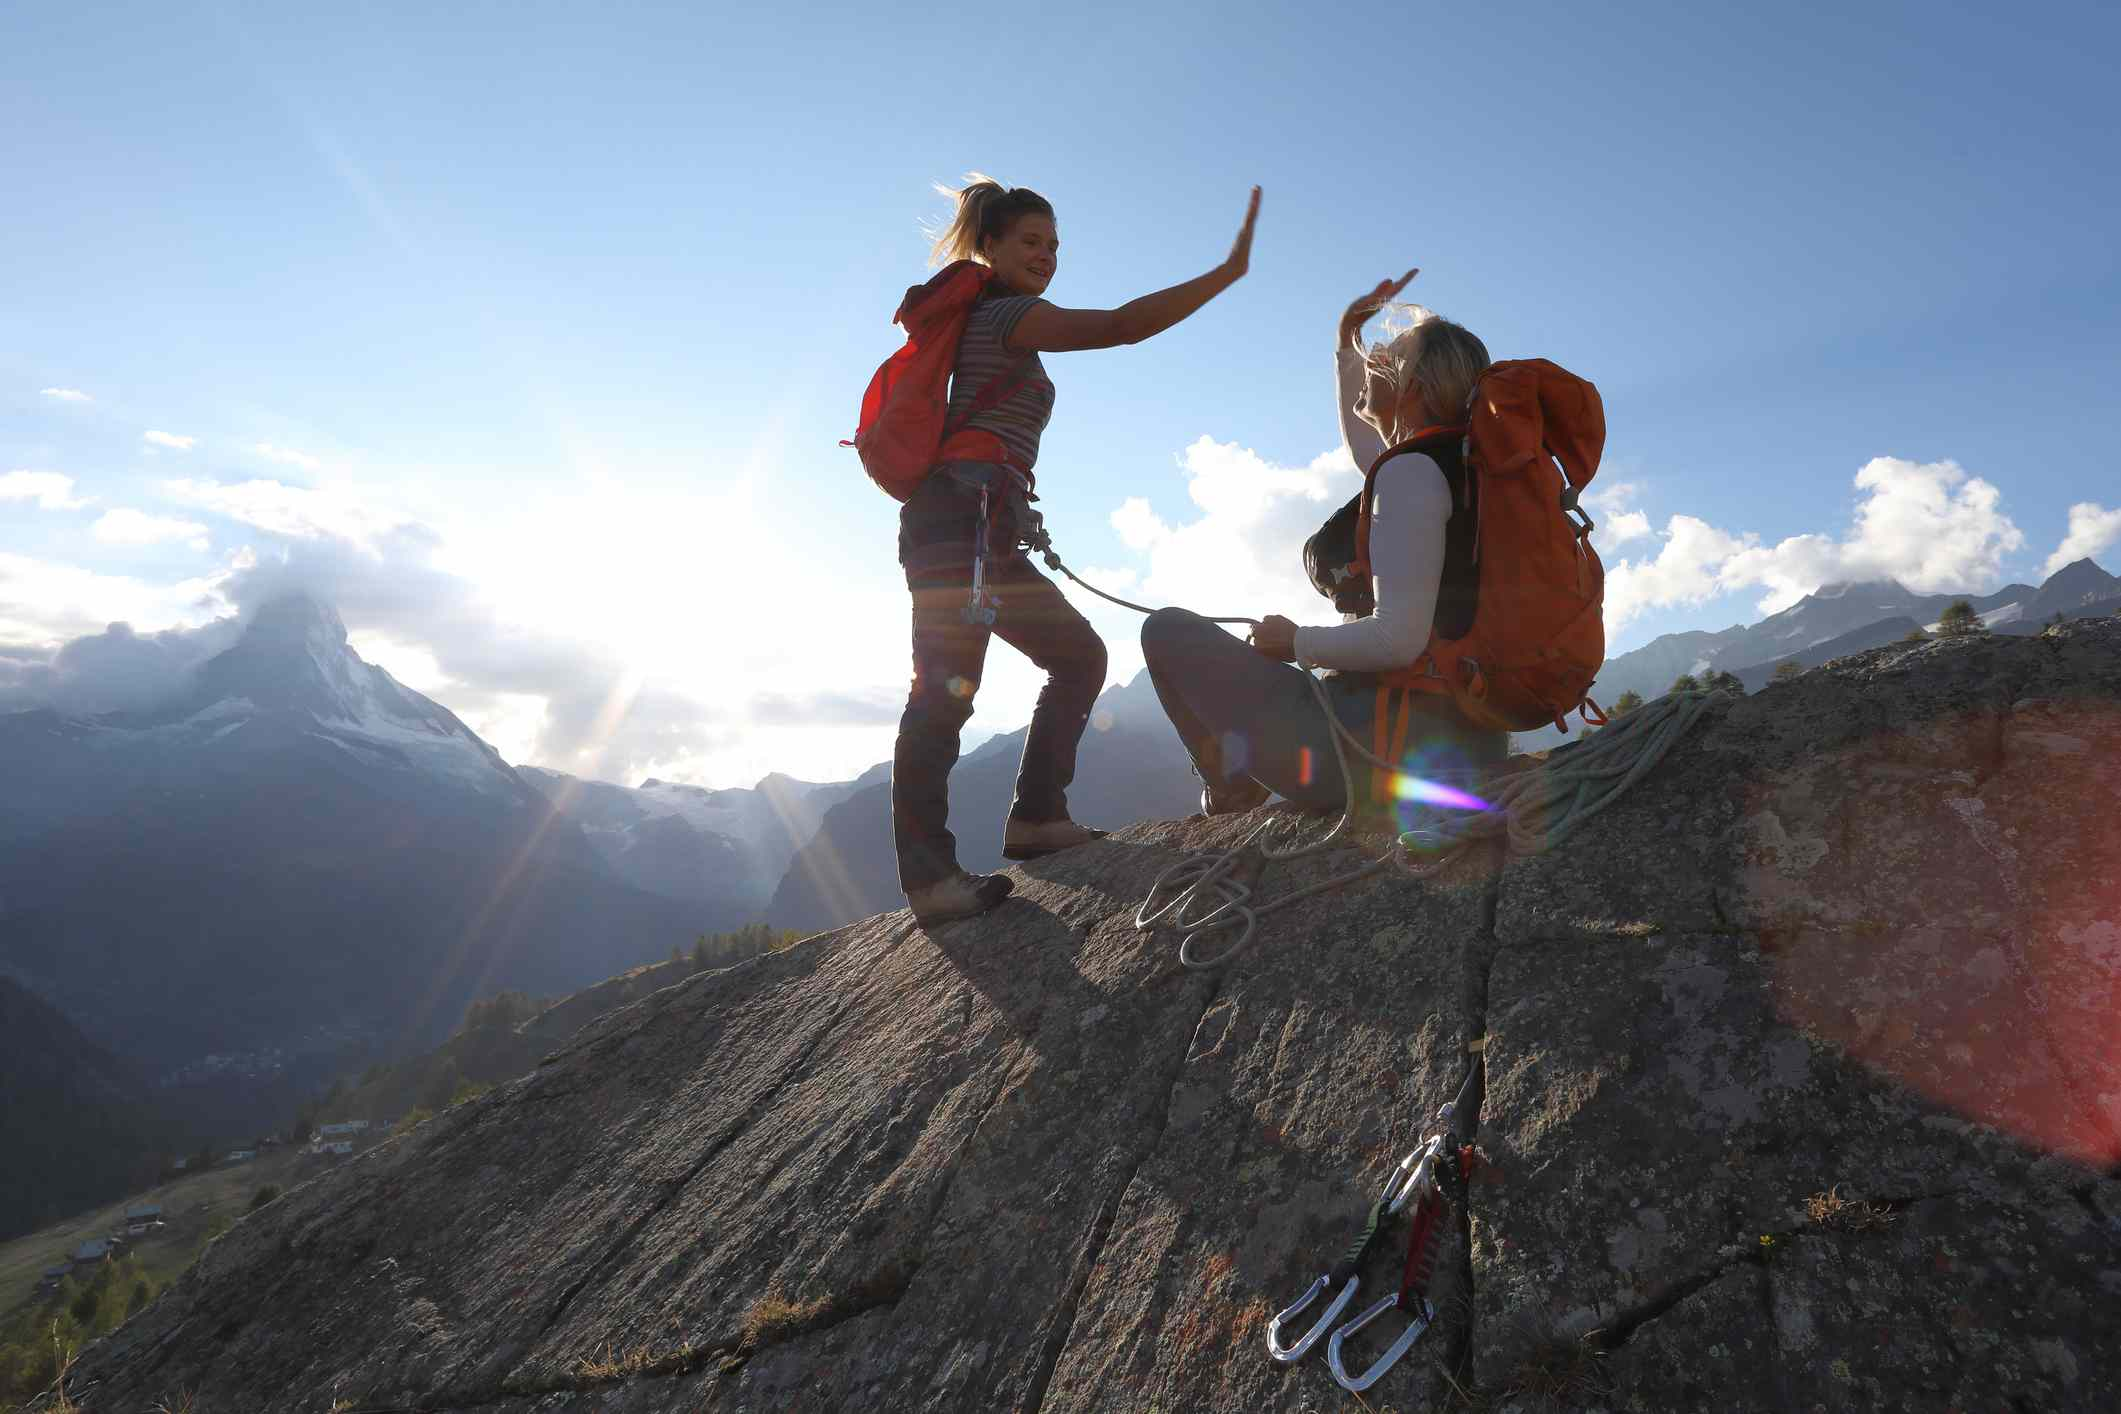 Mother and daughter ascend rock cliff, exchange 'high-fives'